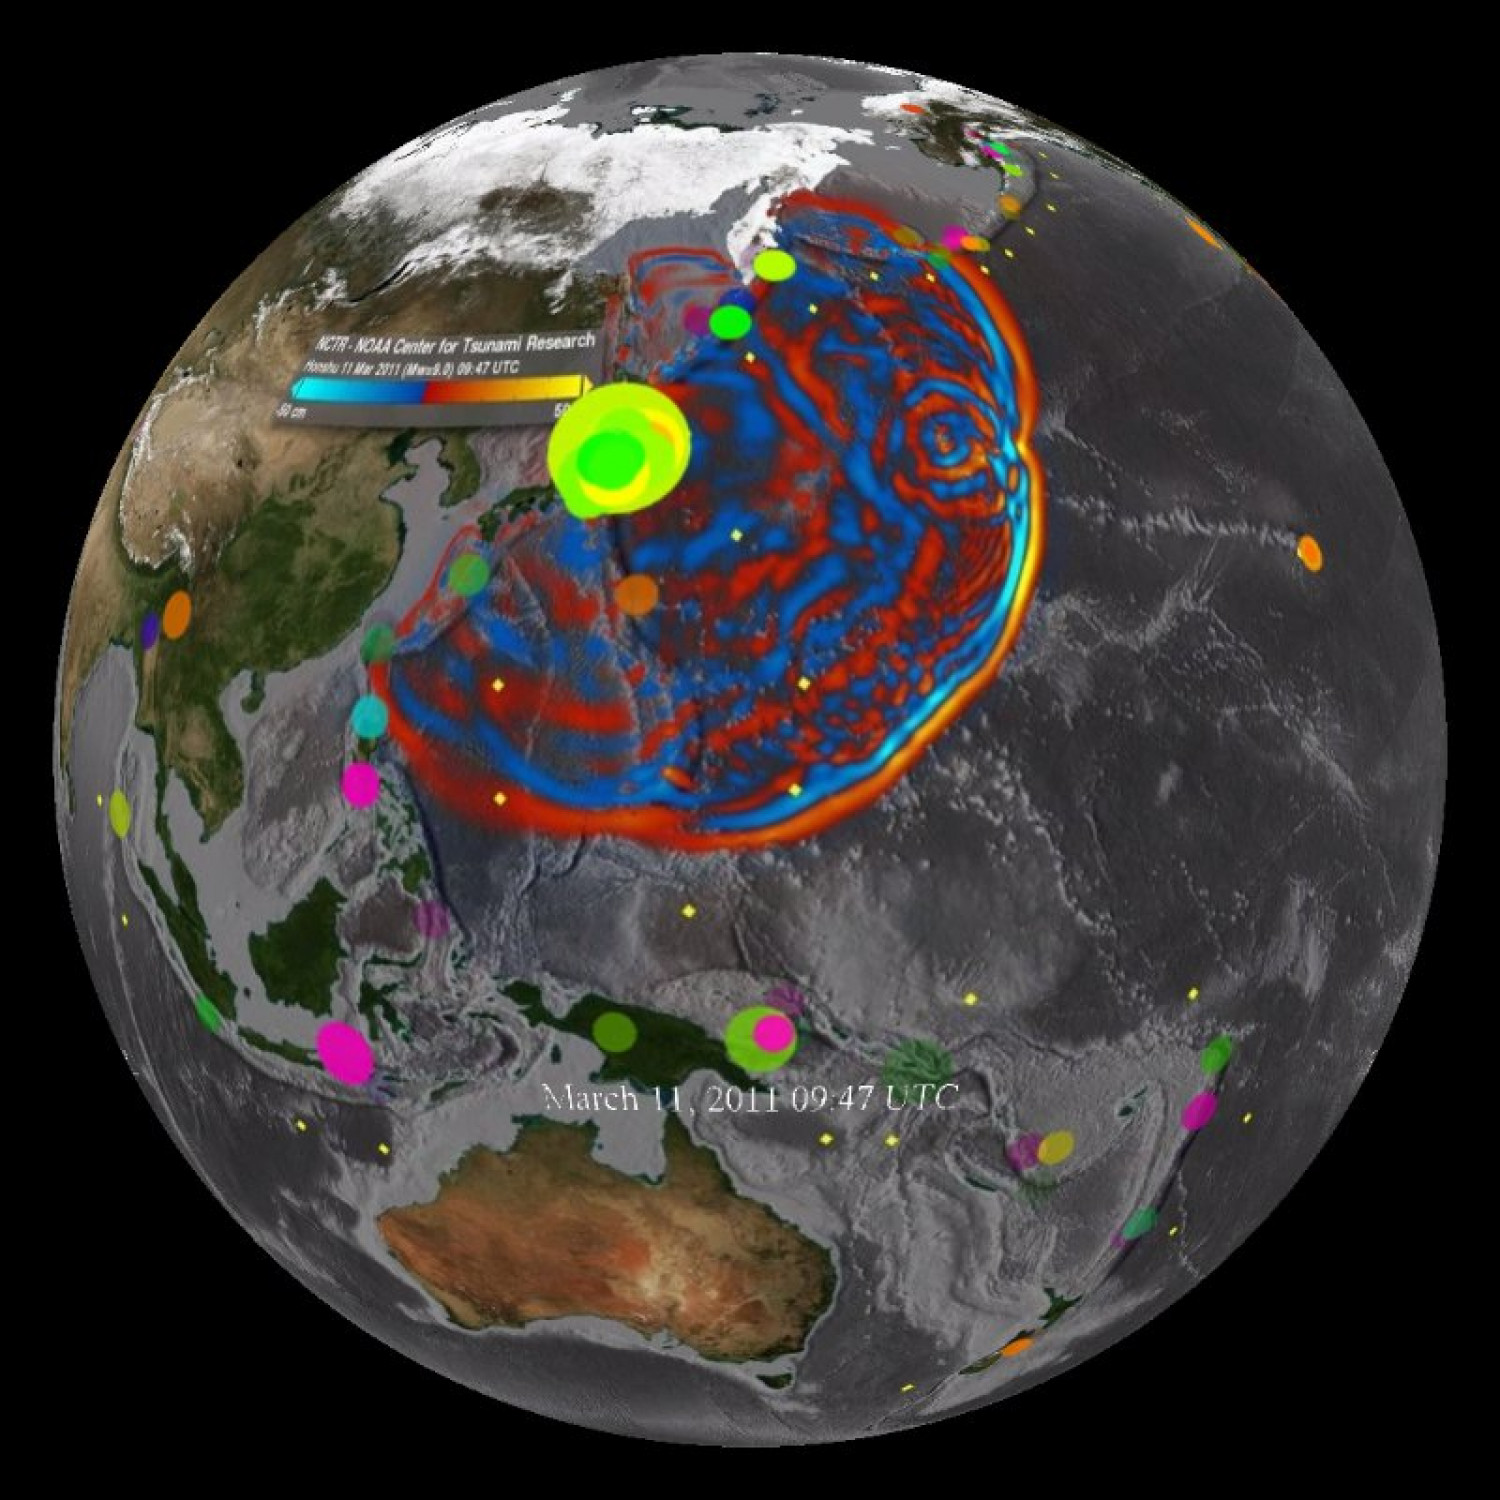 Japan Tsunami Wave Propagation and Combo, March 11, 2011 Infographic